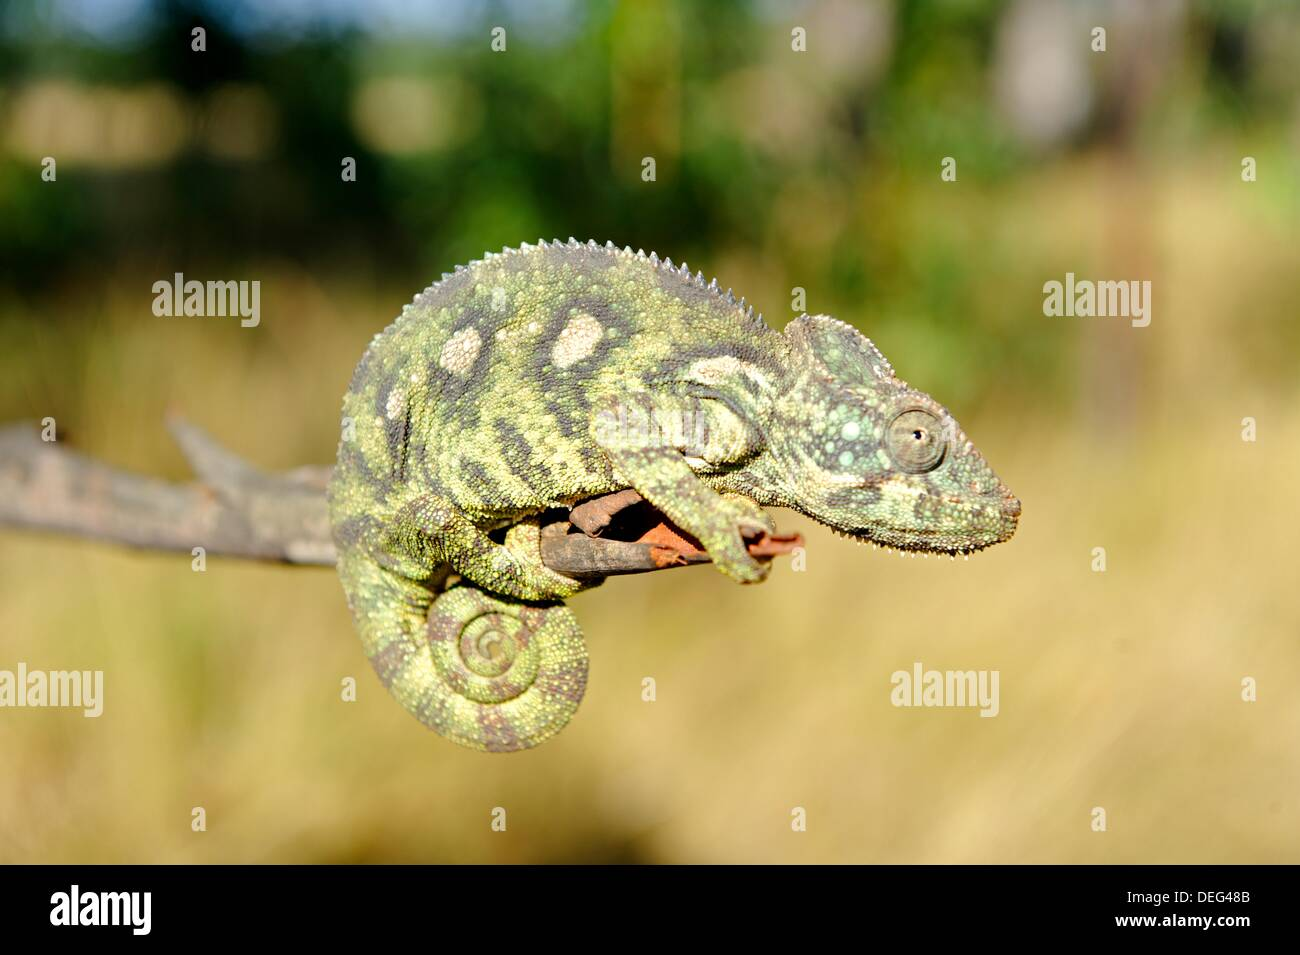 Furcifer is a genus of chameleons whose members are mostly endemic to Madagascar. Isalo National Park is a National Park known - Stock Image